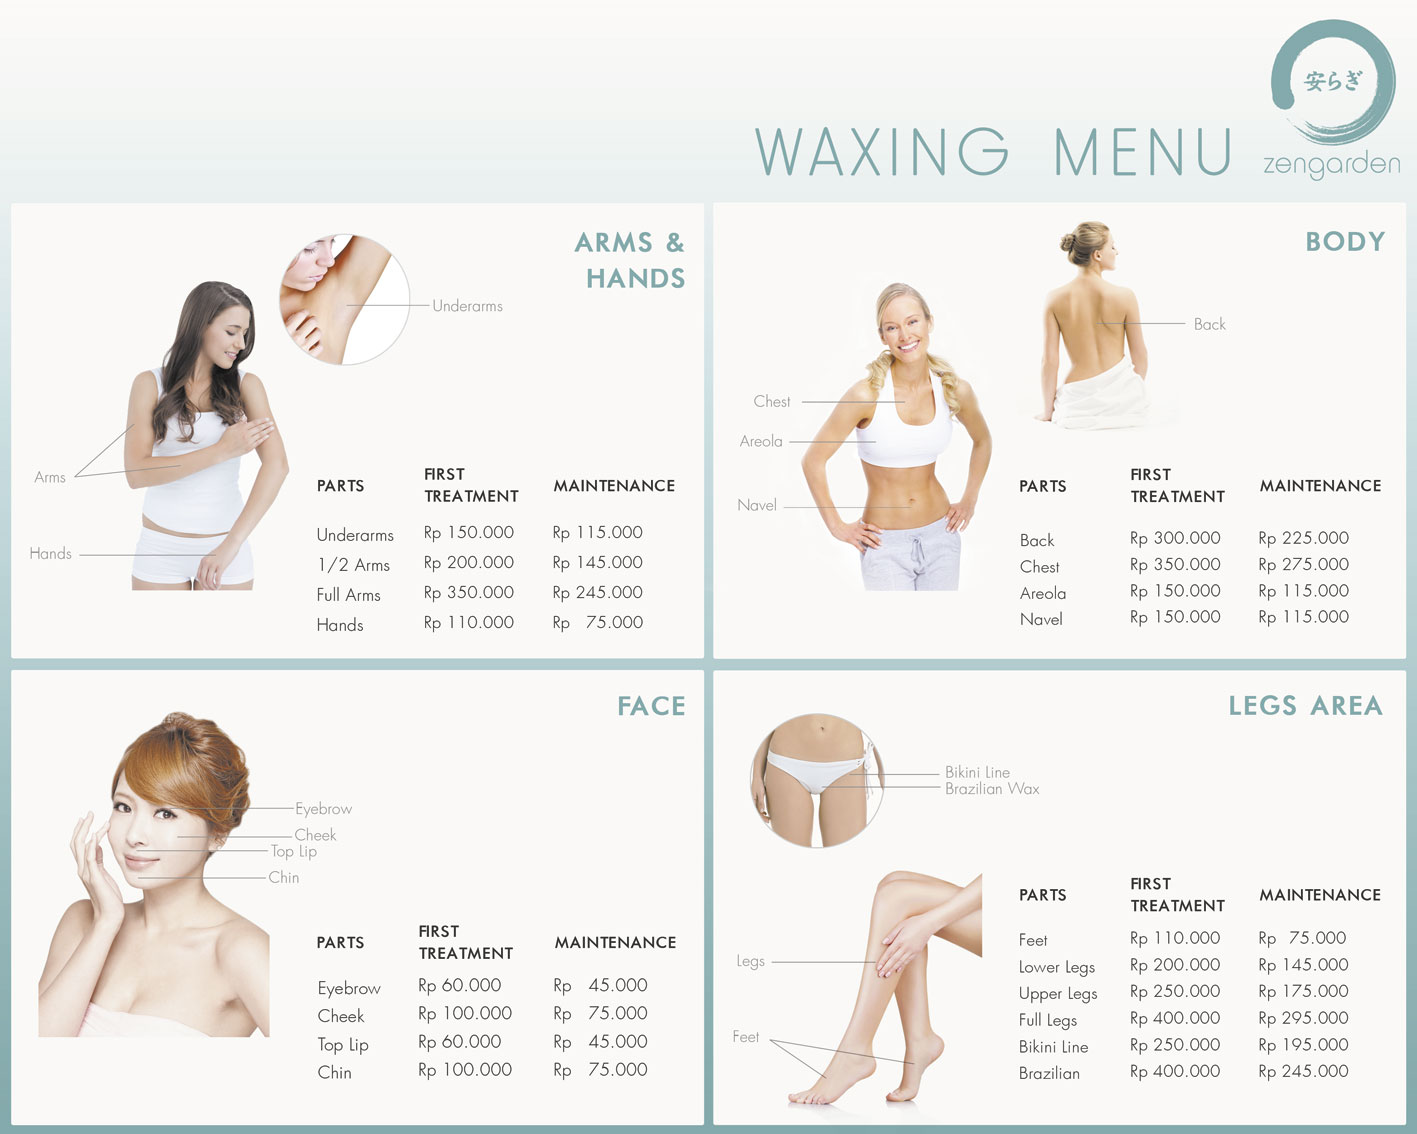 Menu Waxing Zengarden